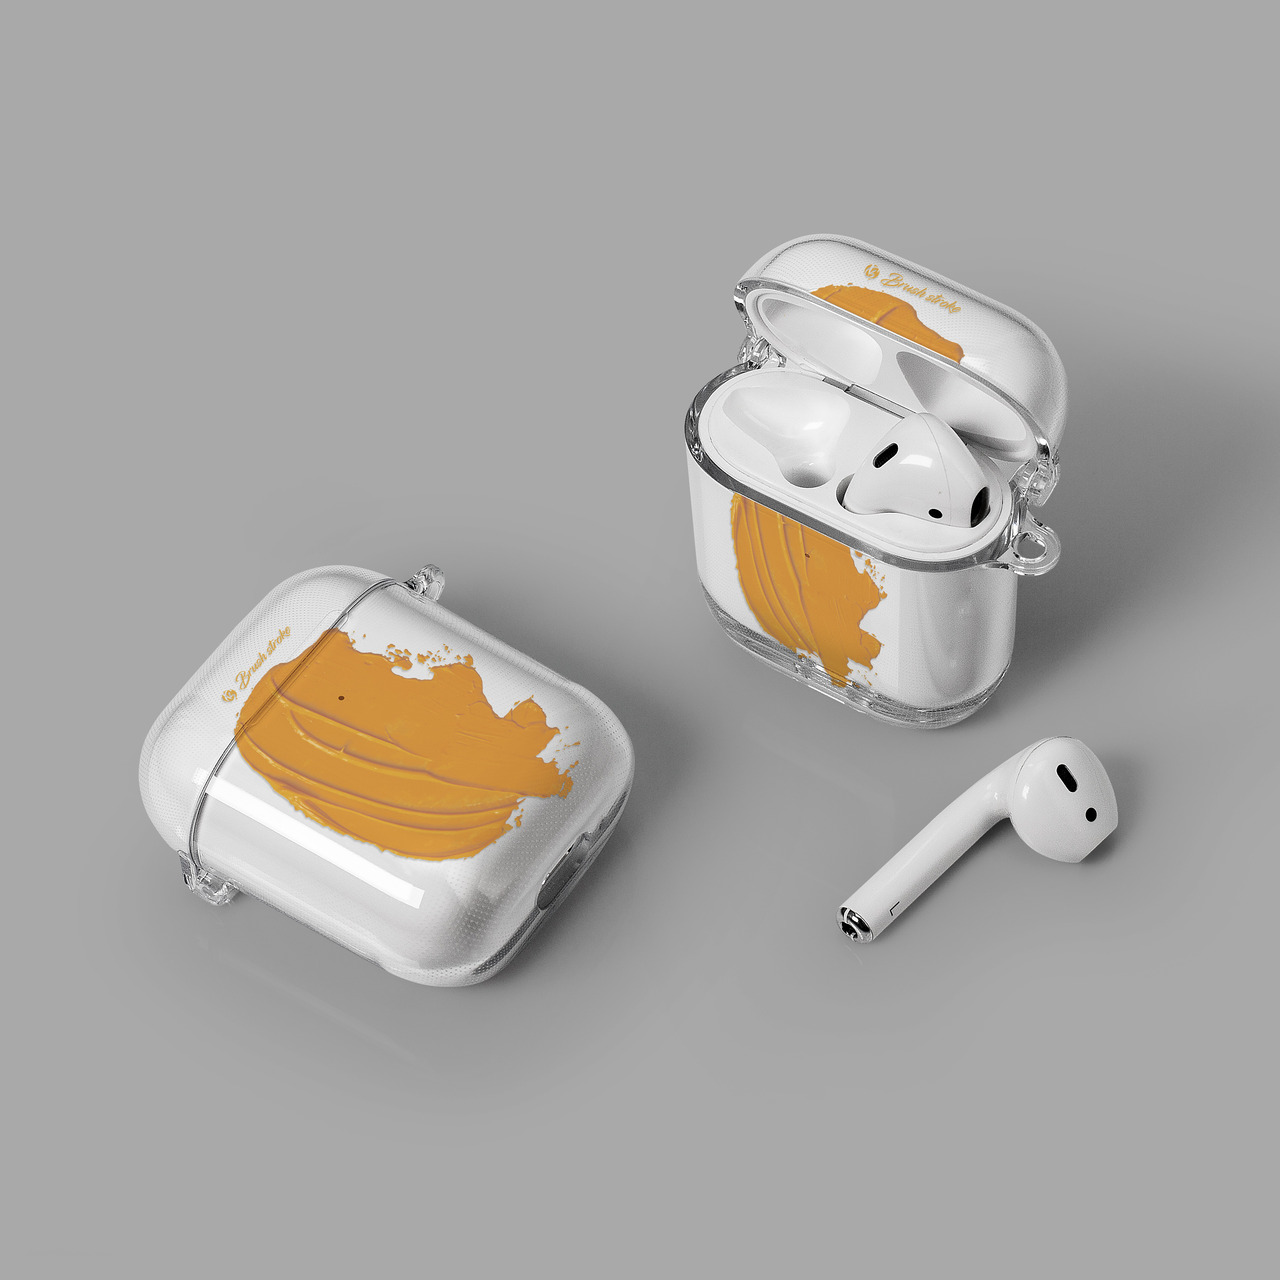 [Airpods cases] Brushstrokes No.10